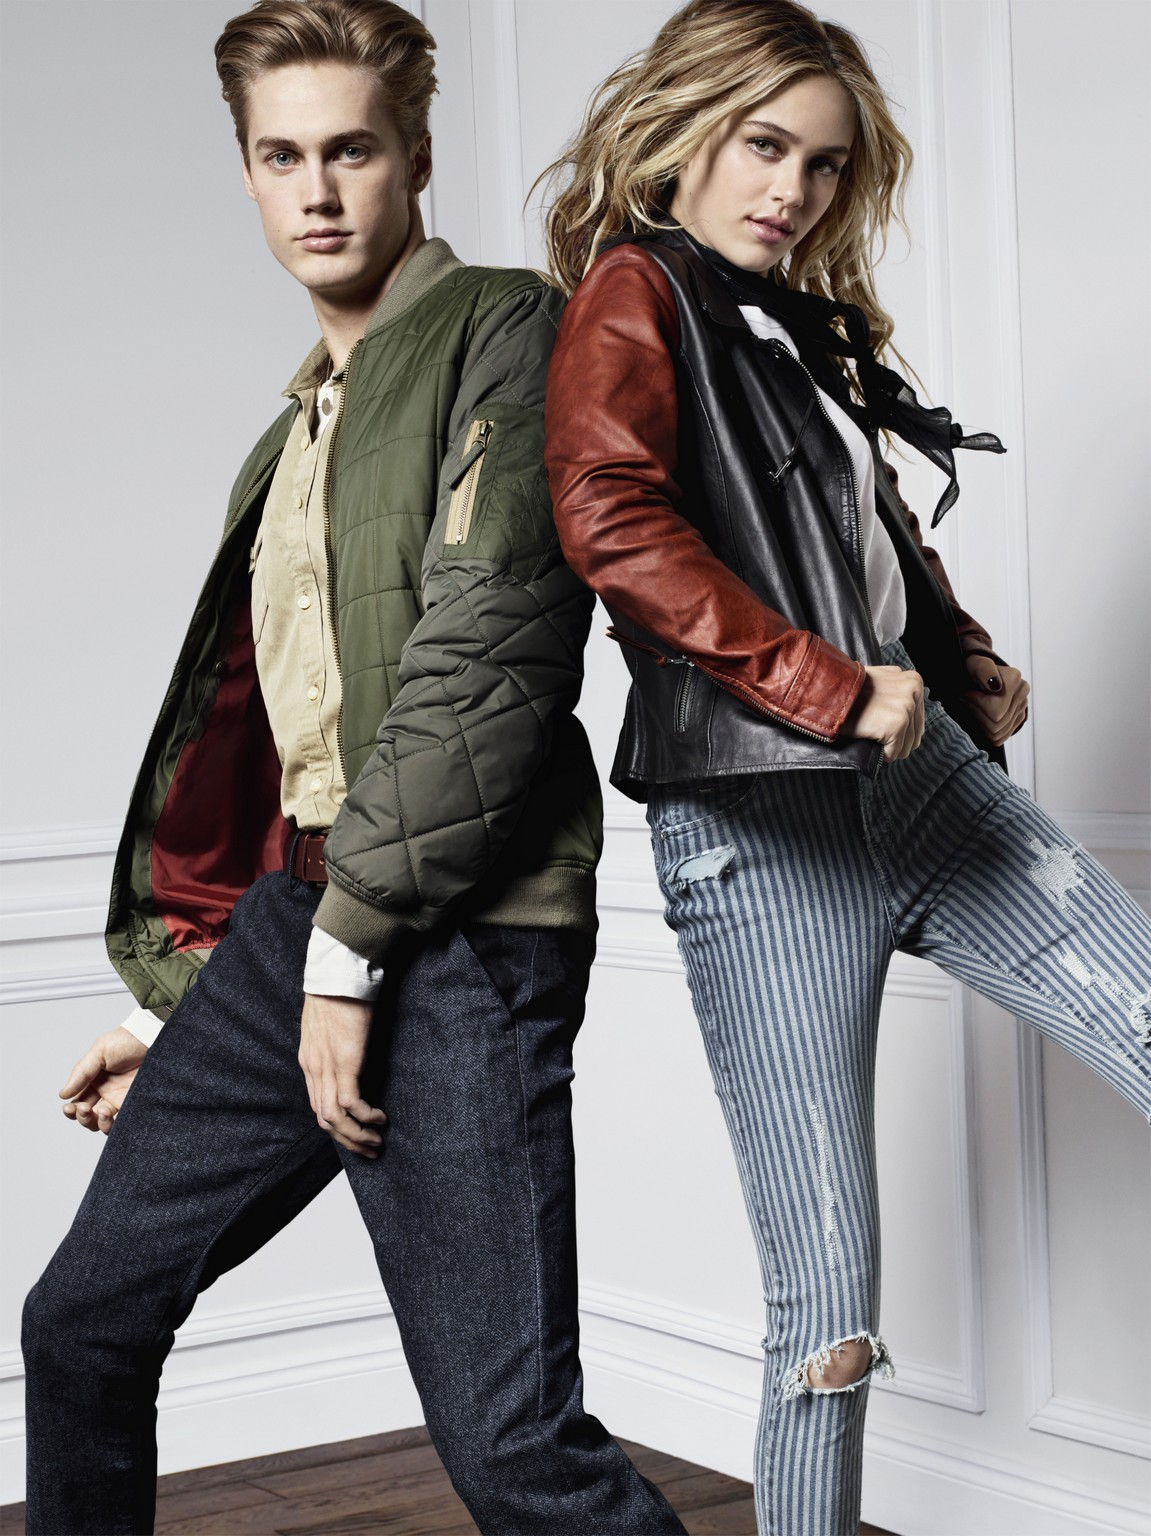 Pepe Jeans London campaign